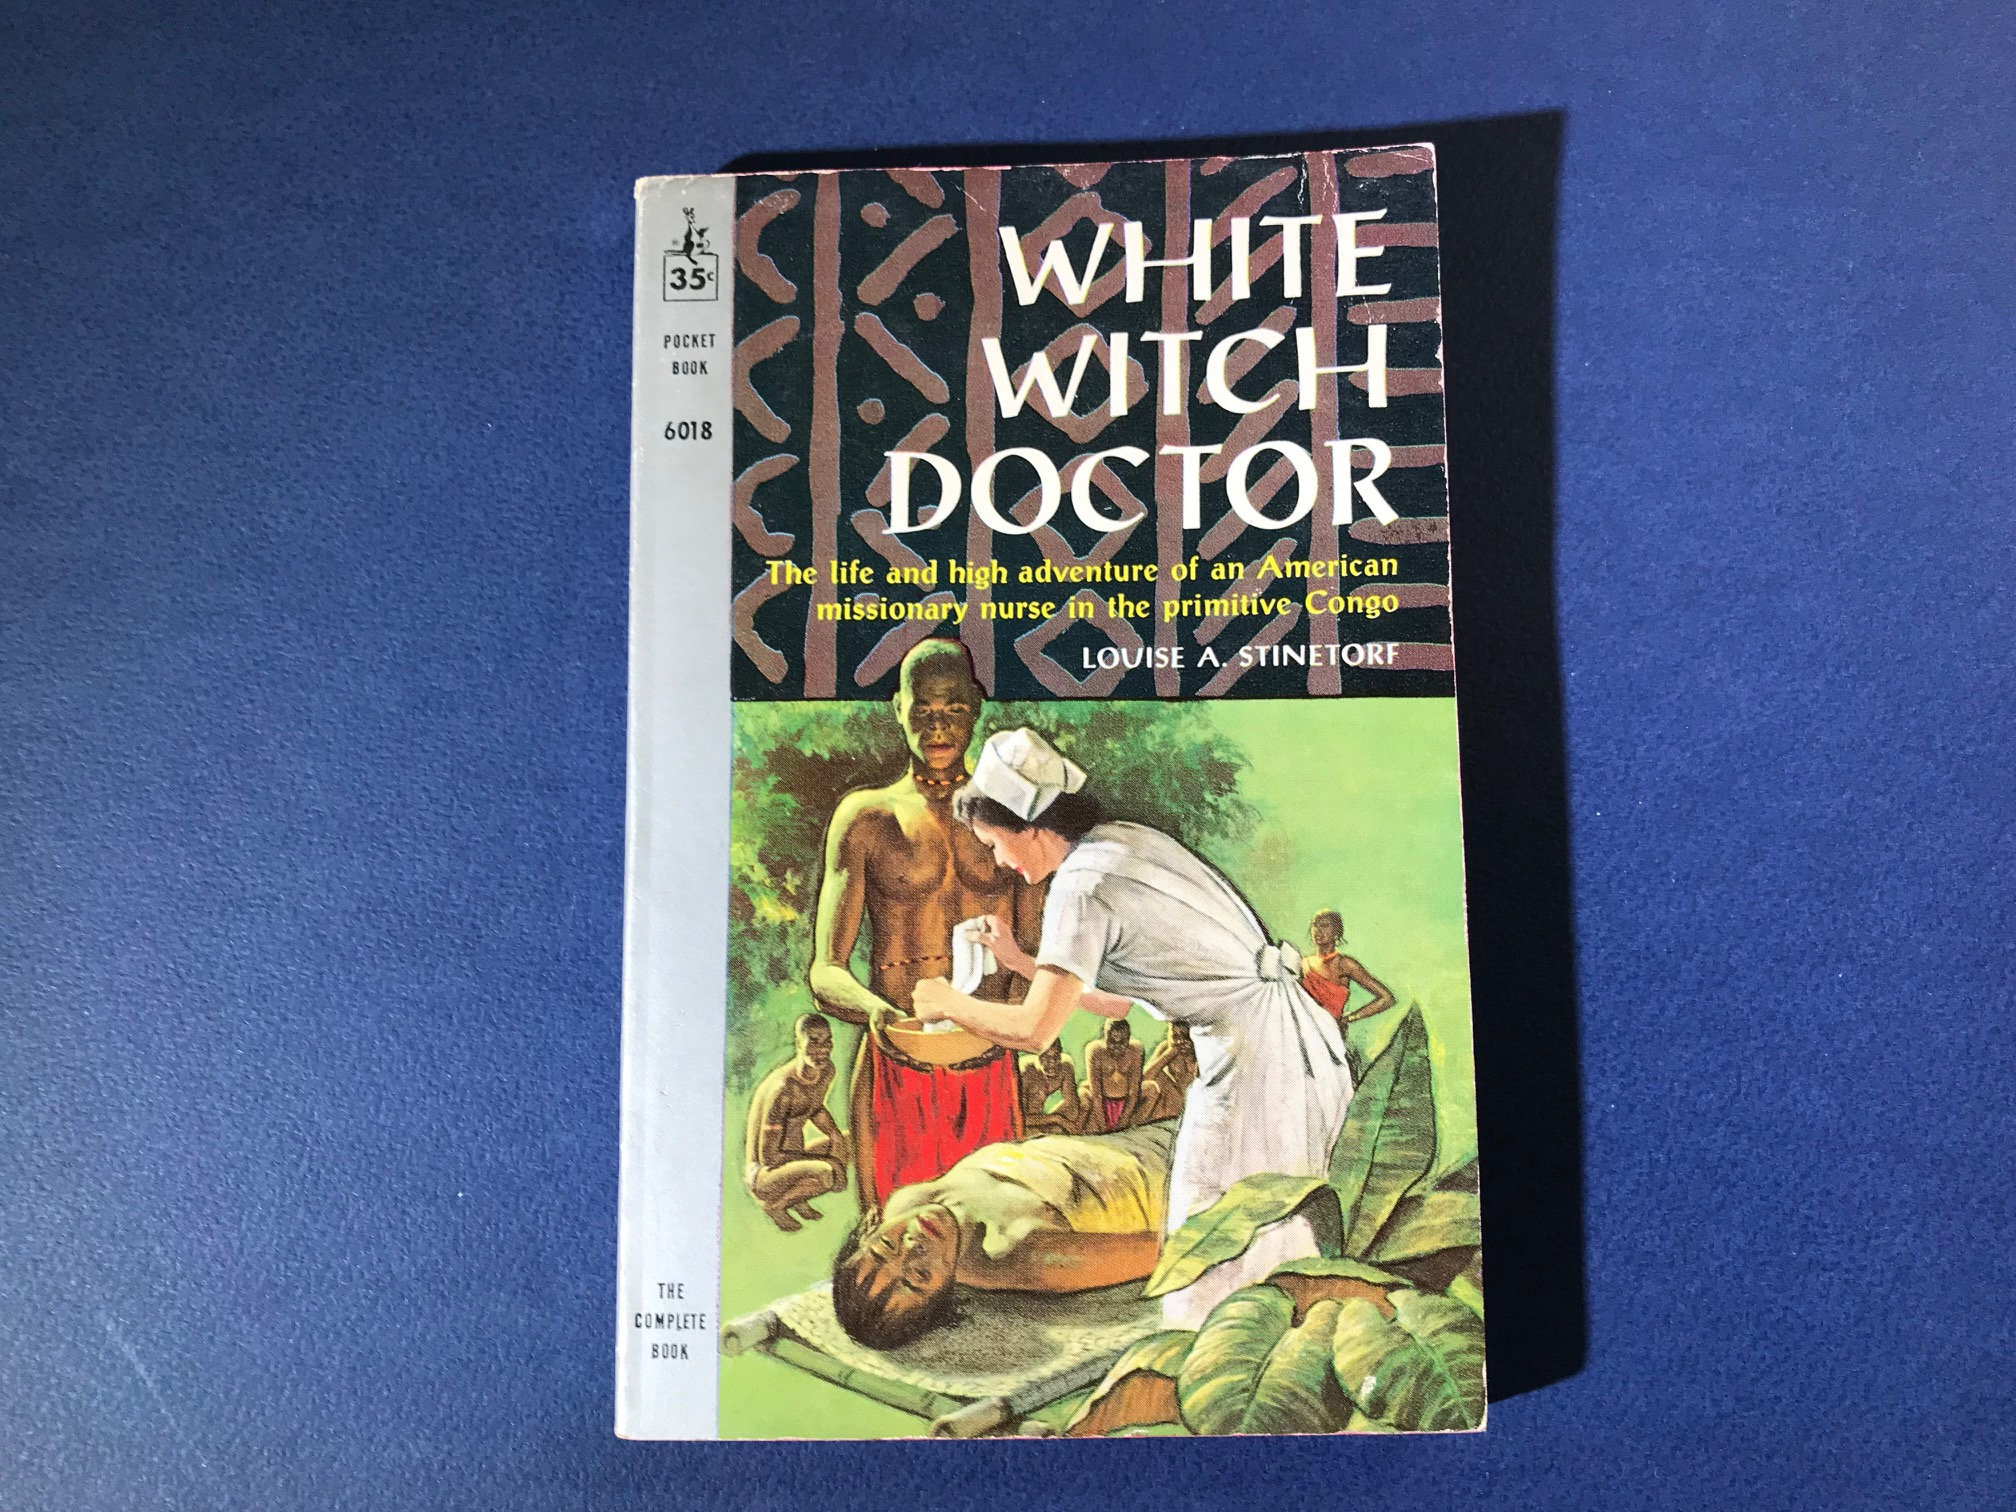 White Witch Doctor by Louise A  Stinetorf - 1960 2nd printing Pocket 6018  vintage paperback book - nurse in Africa